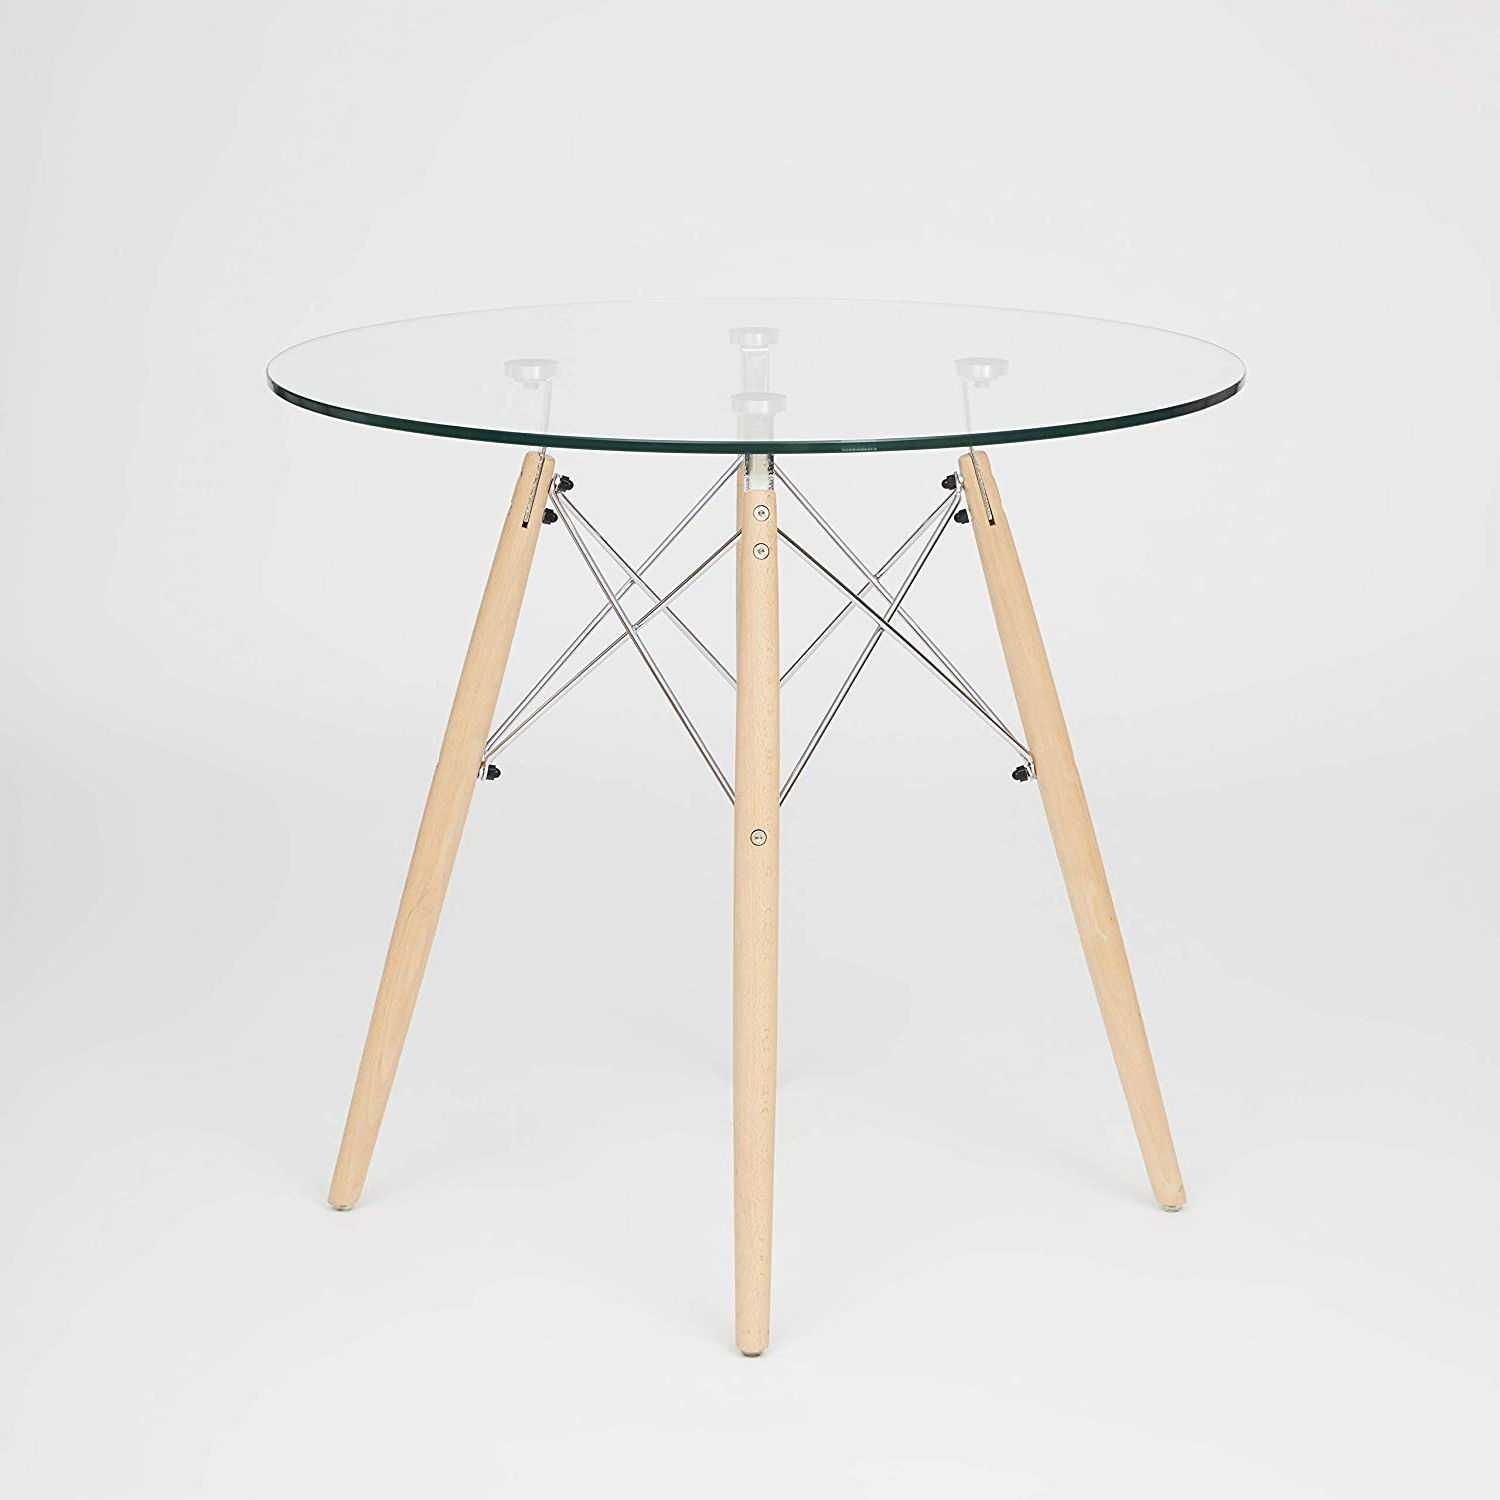 Eames Style Dining Tables With Chromed Leg And Tempered Glass Top Within Best And Newest Ochs Dsw Style Dining Round Table Glass Top With Natural (View 10 of 30)